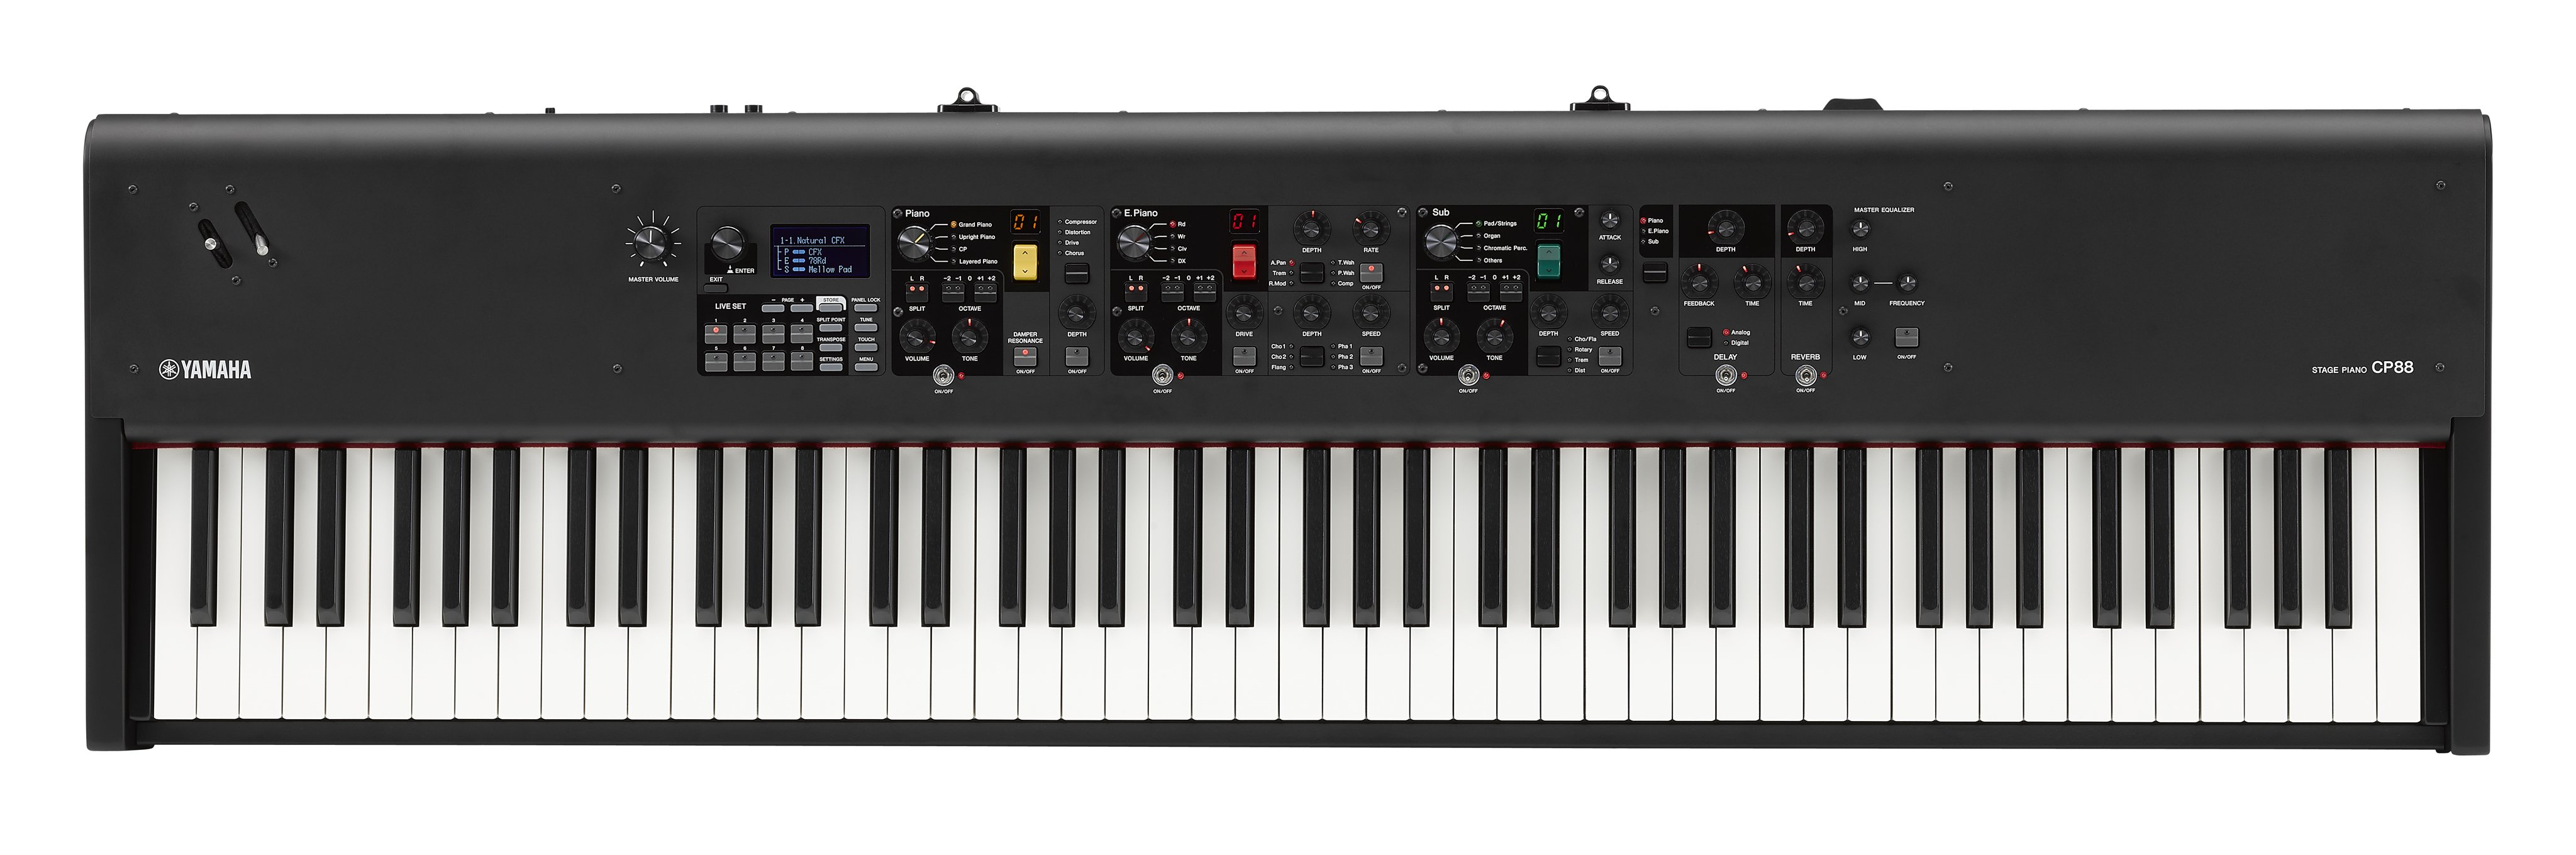 Yamaha Digitale Stage Piano CP88